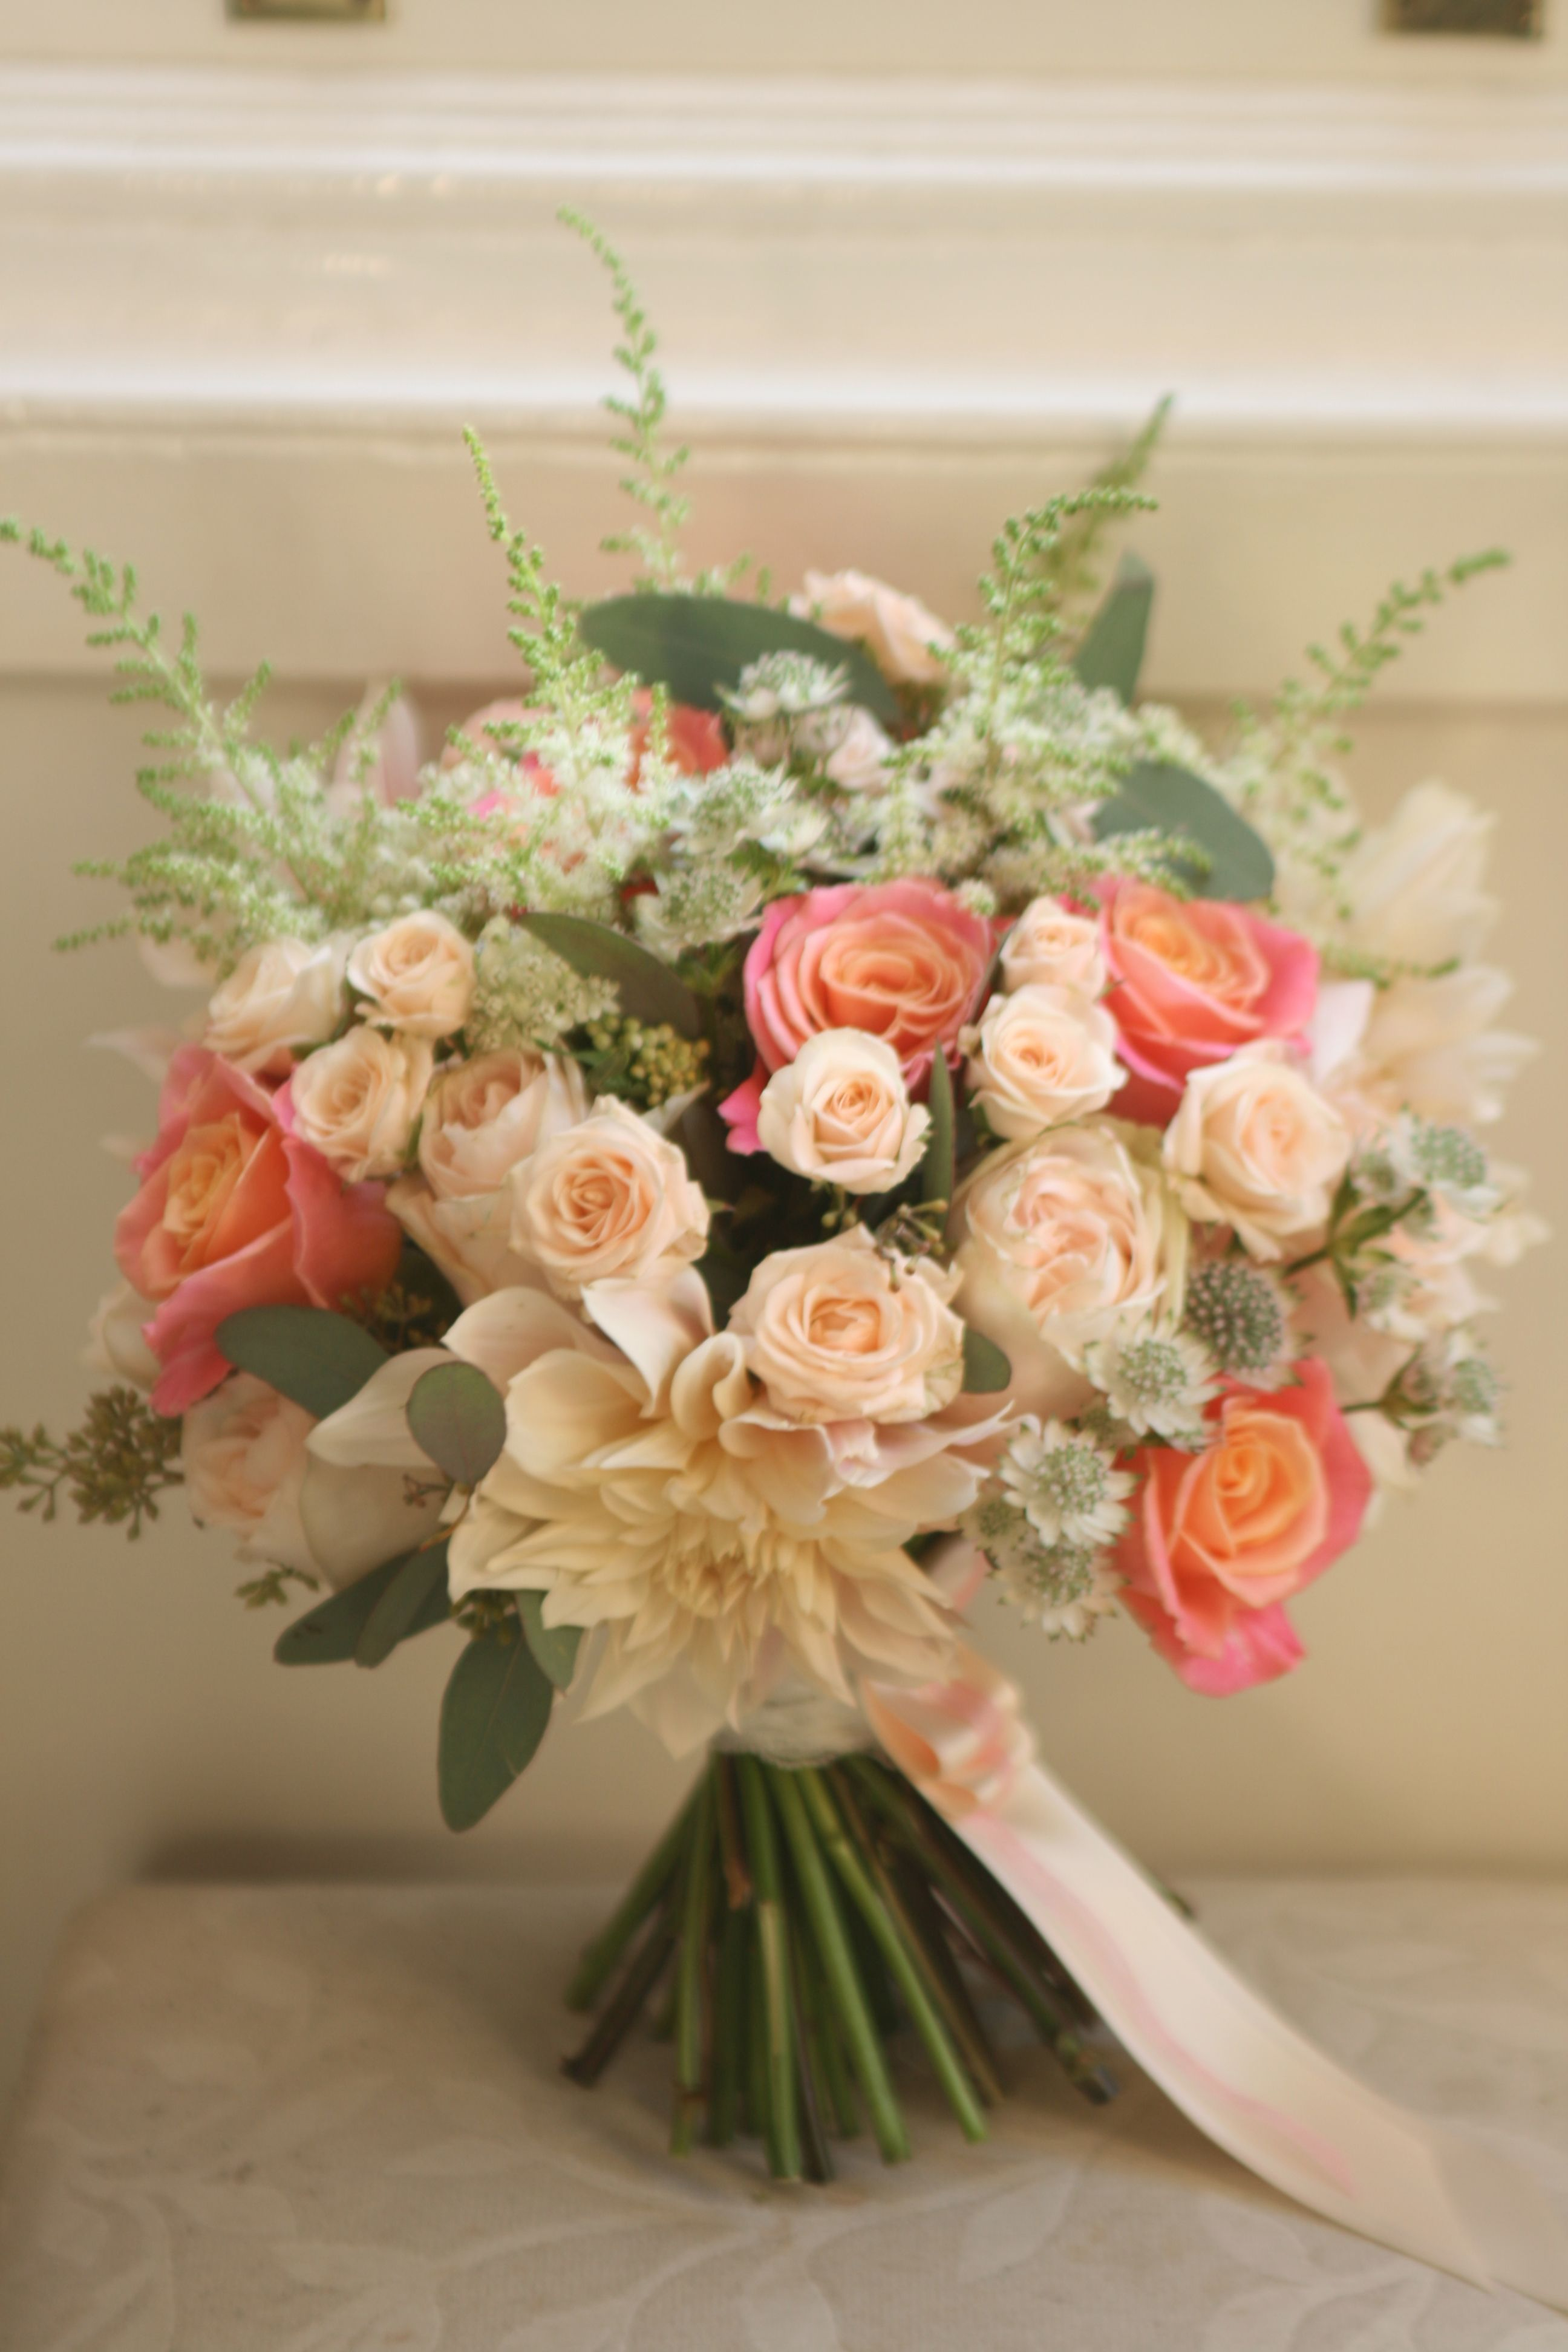 Wedding Bouquet In Coral And Peach With Miss Piggy Roses Caf Au